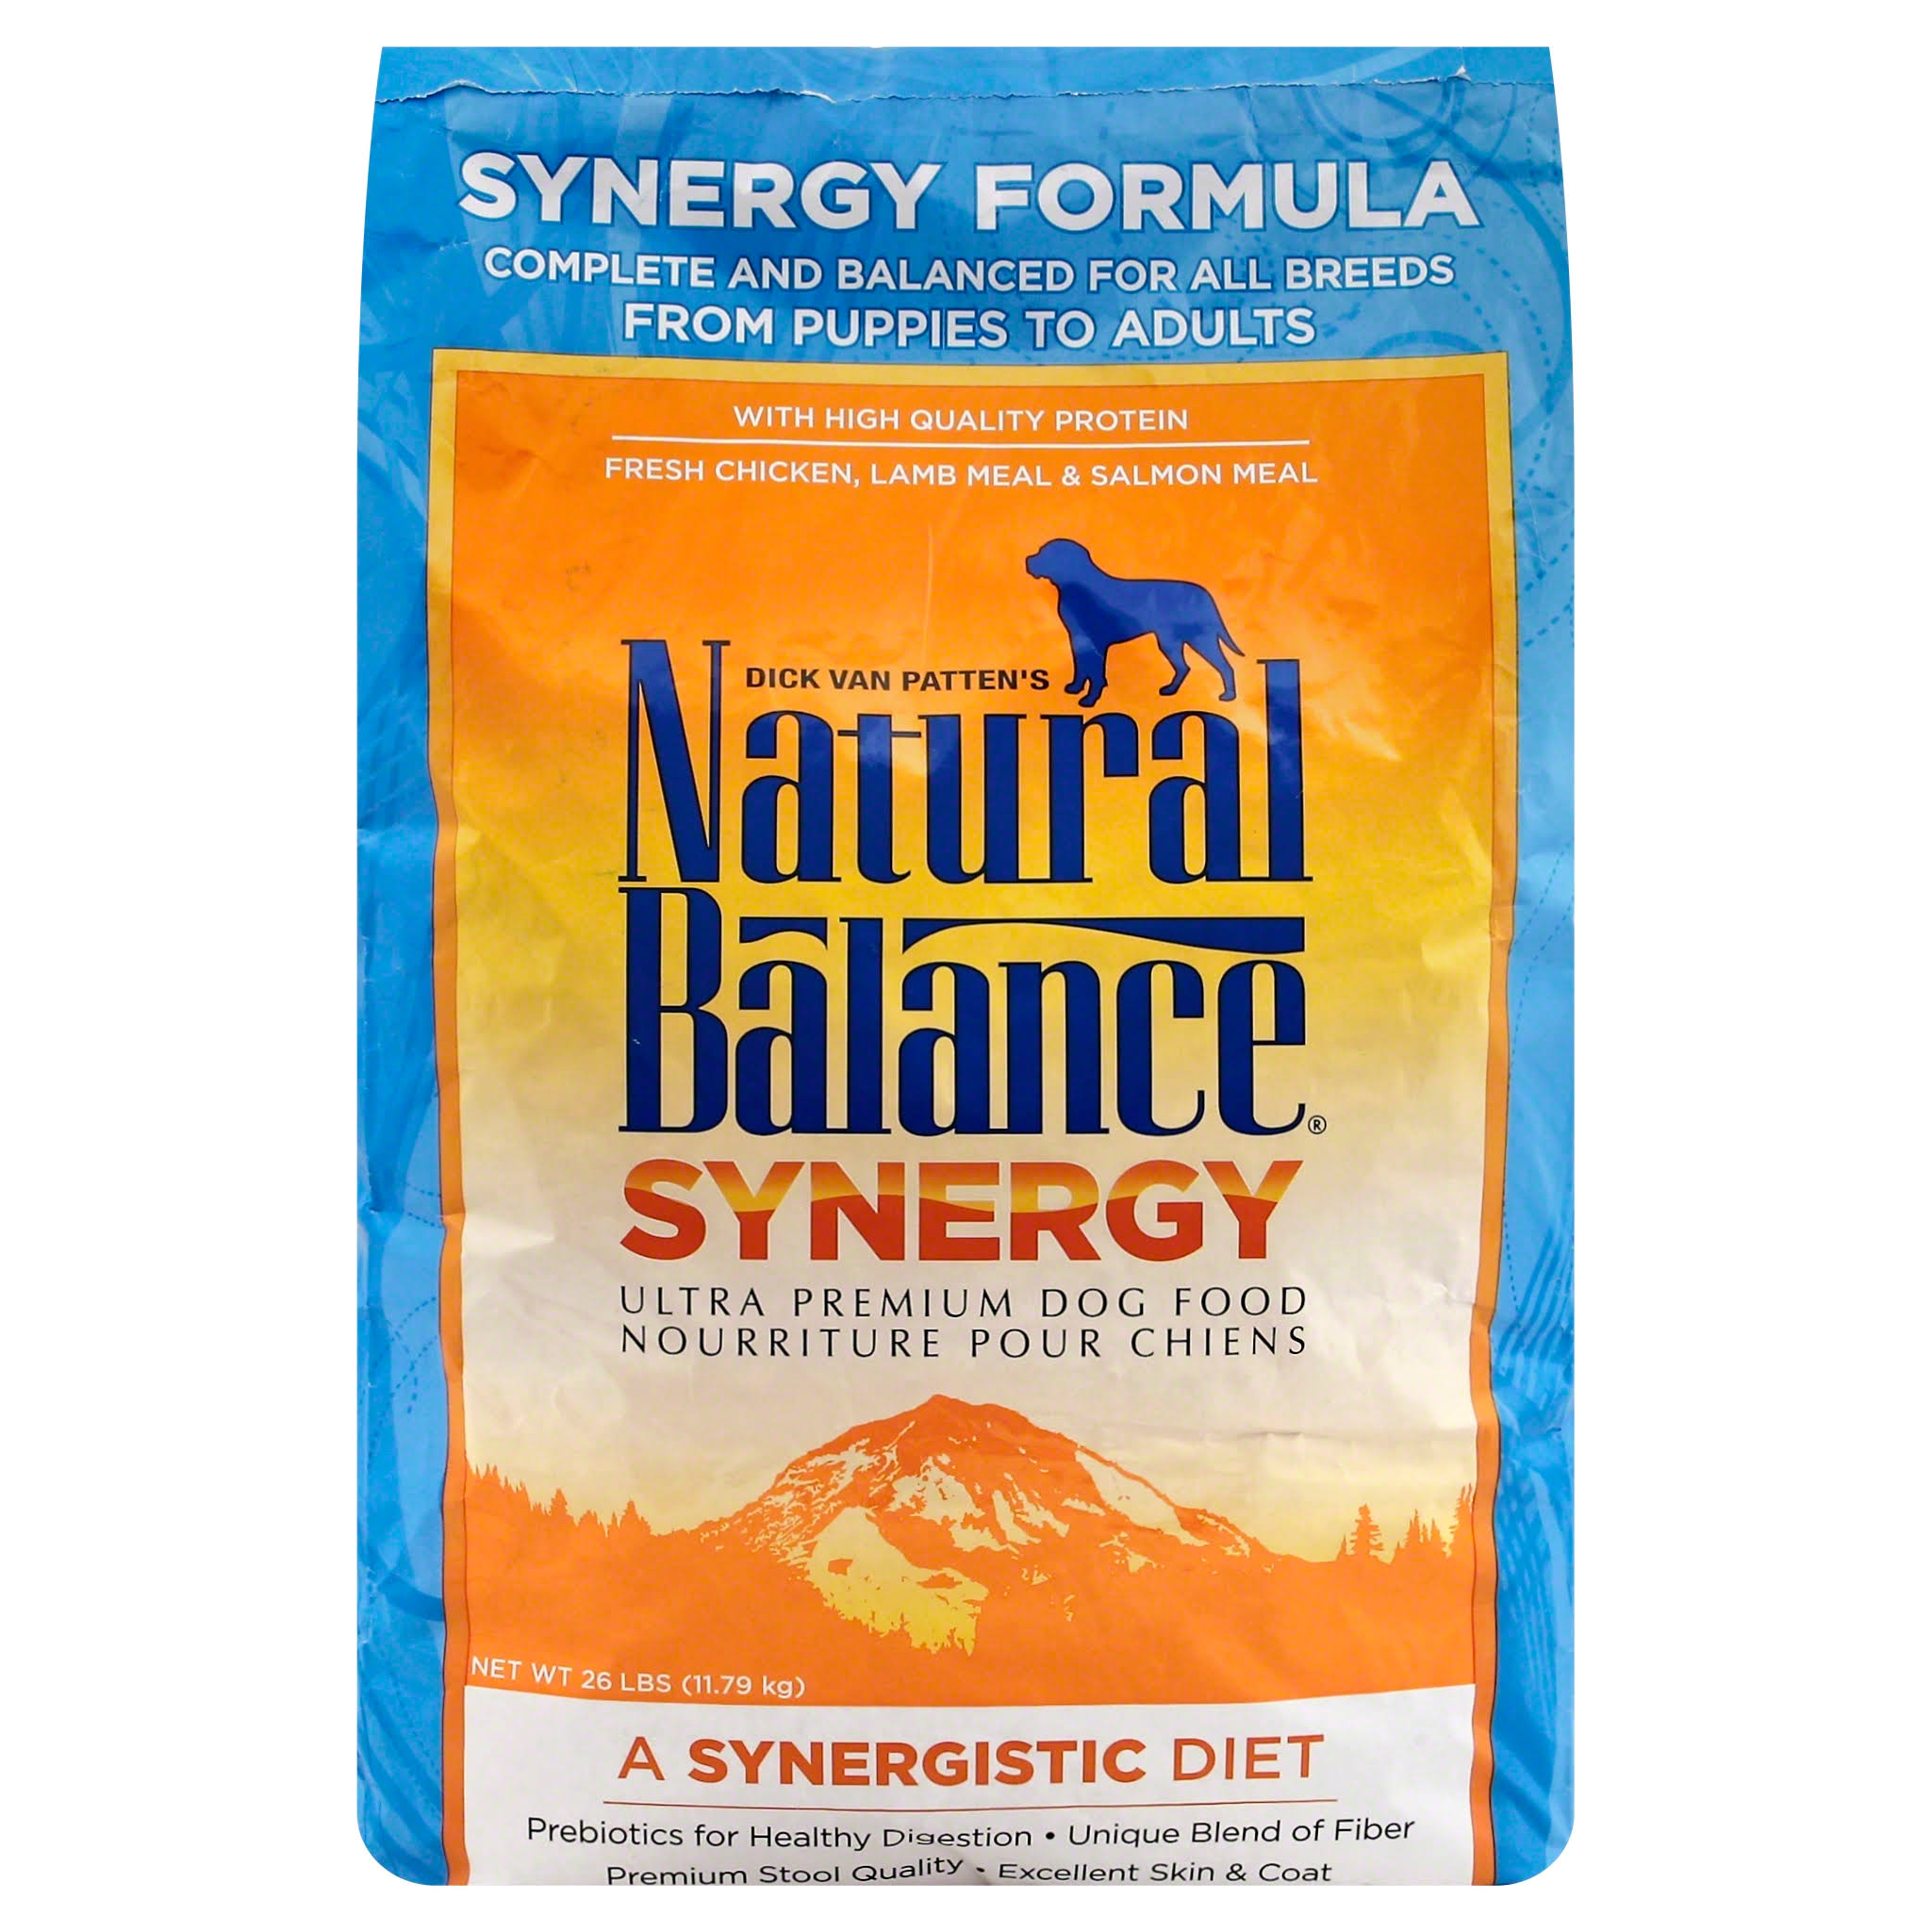 Natural Balance Synergy Ultra Premium Formula Dry Dog Food - 26lbs